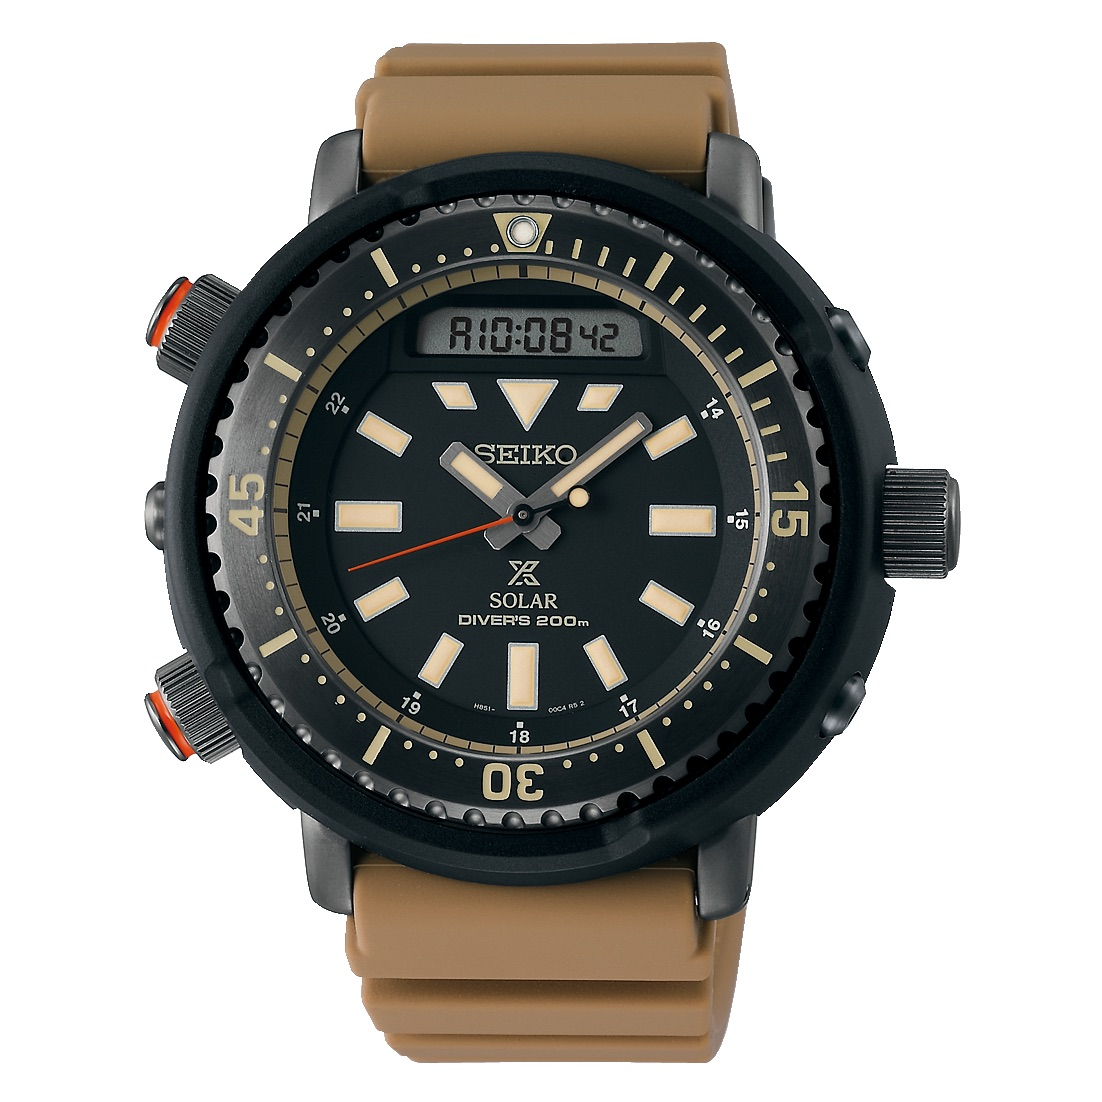 Seiko Prospex Street Series Urban Safari Tuna